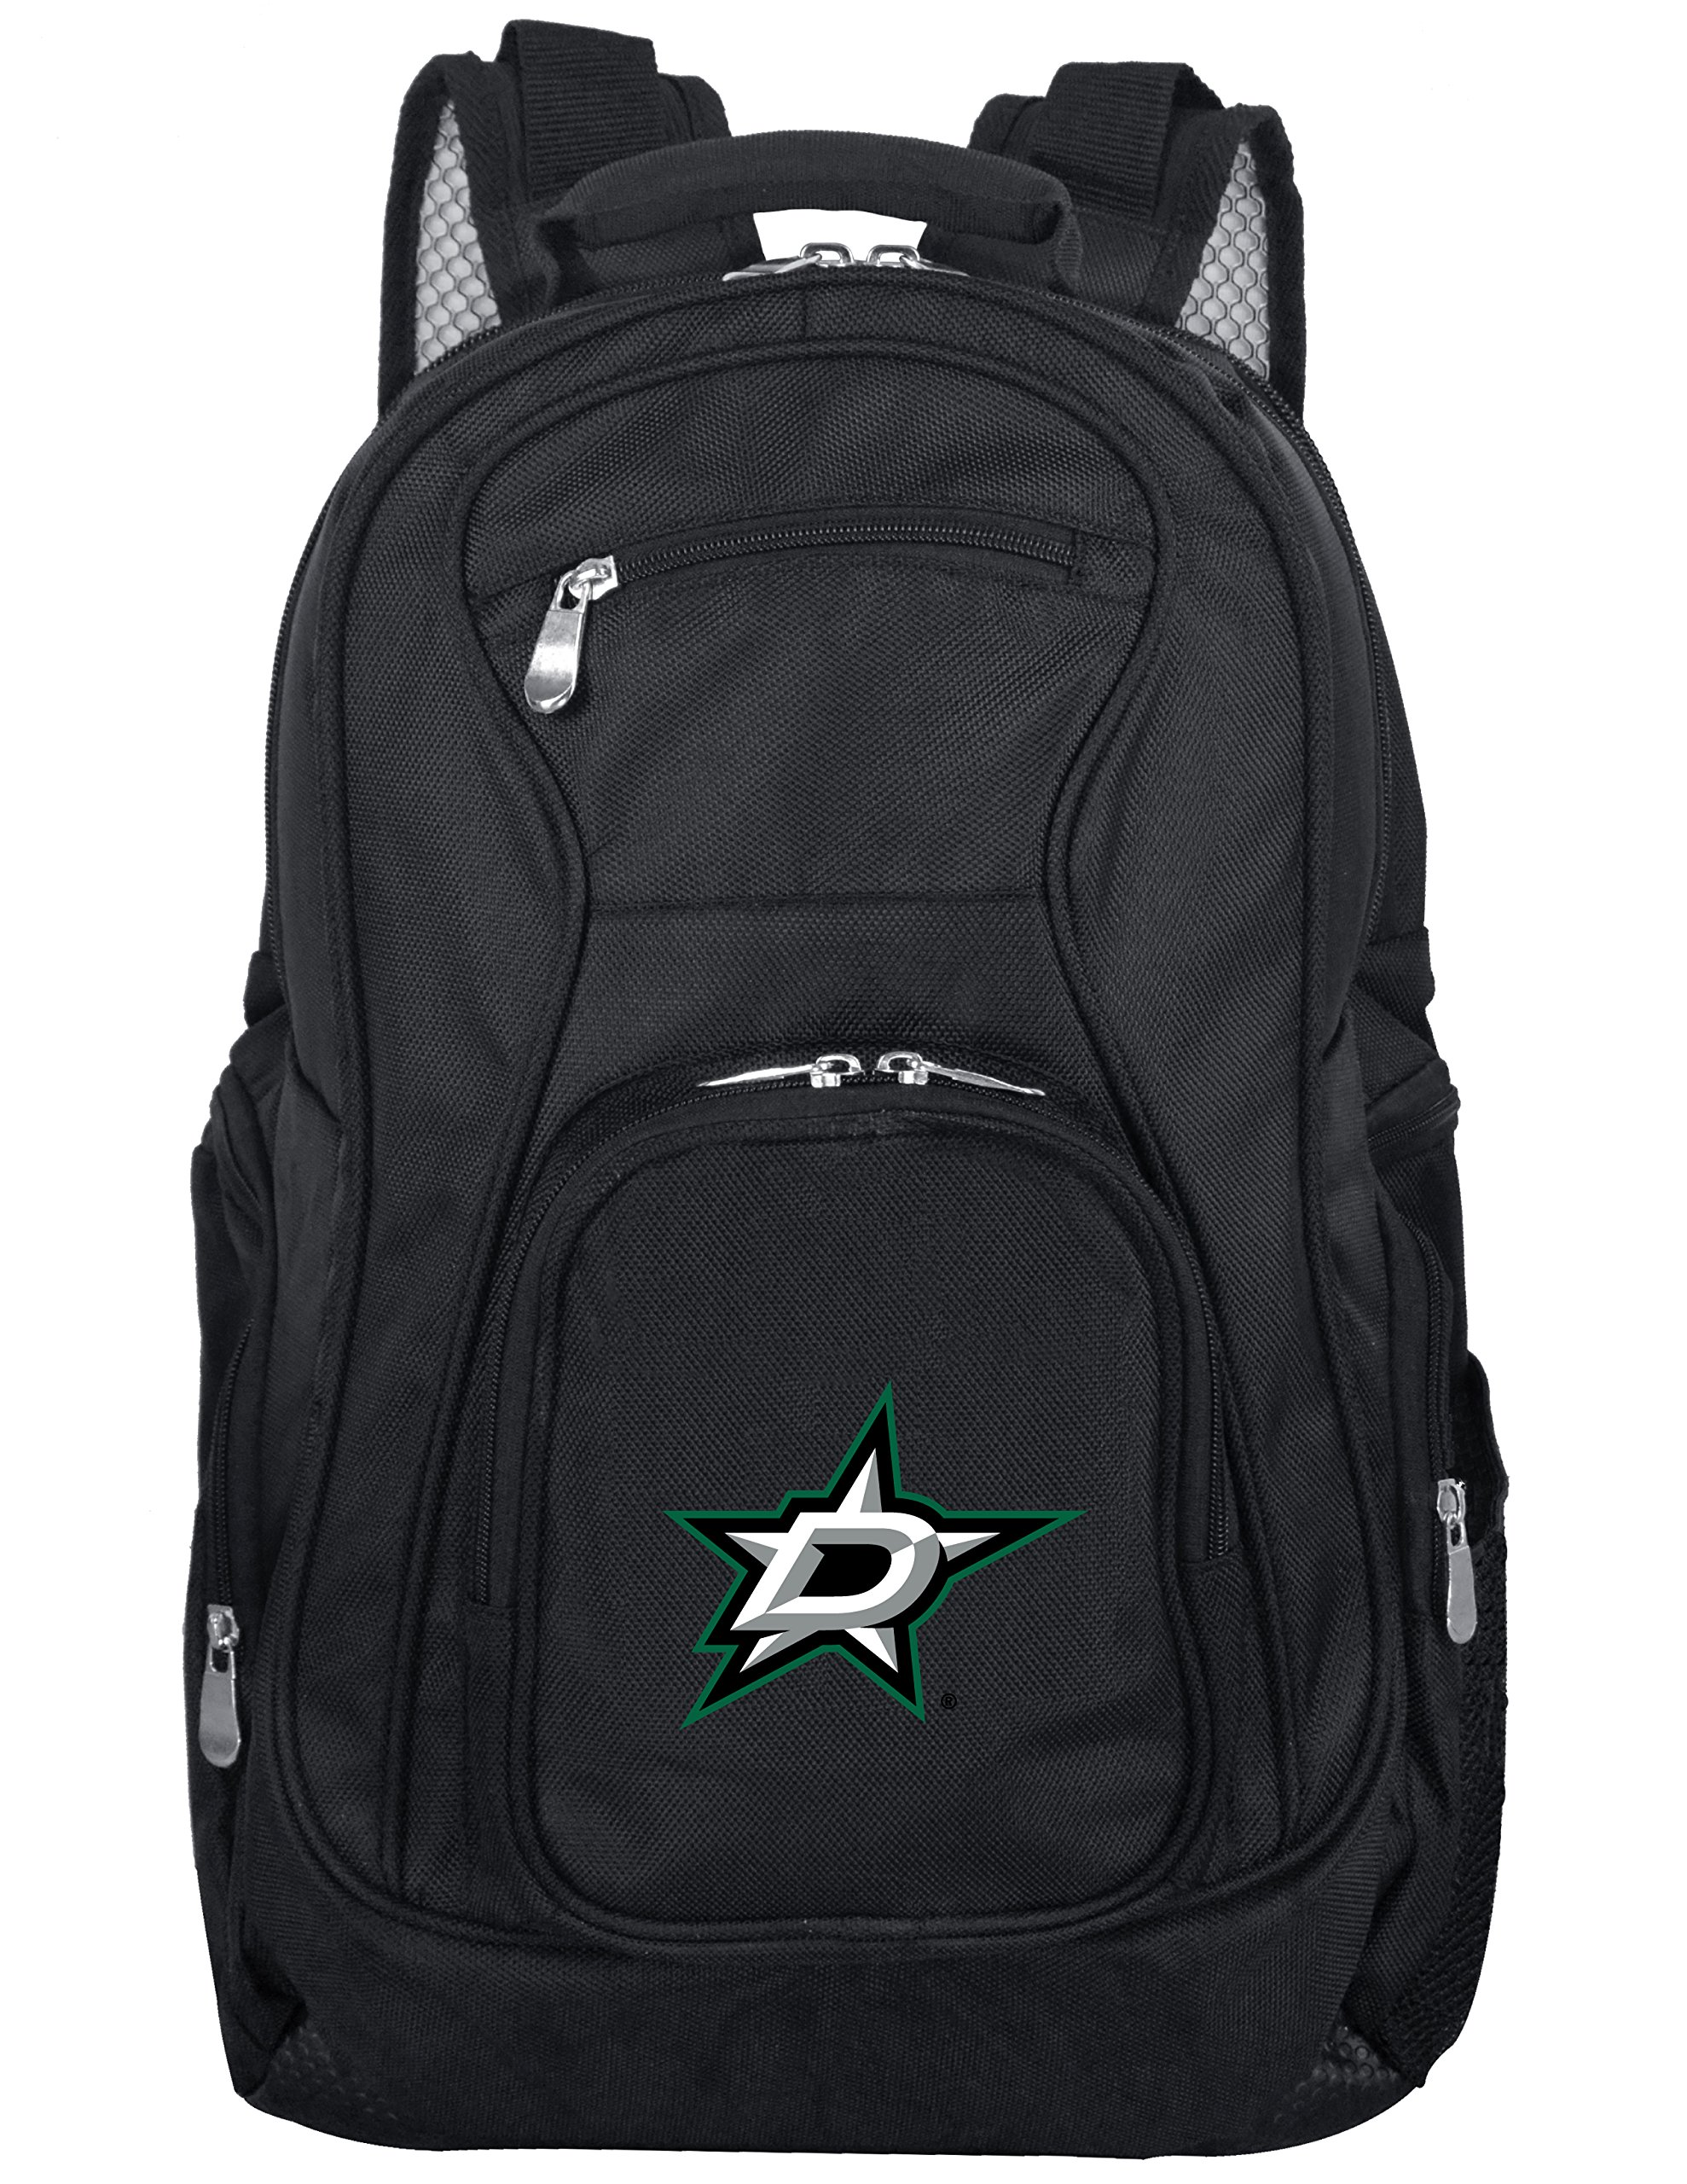 NHL Dallas Stars Voyager Laptop Backpack, 19-inches, Black